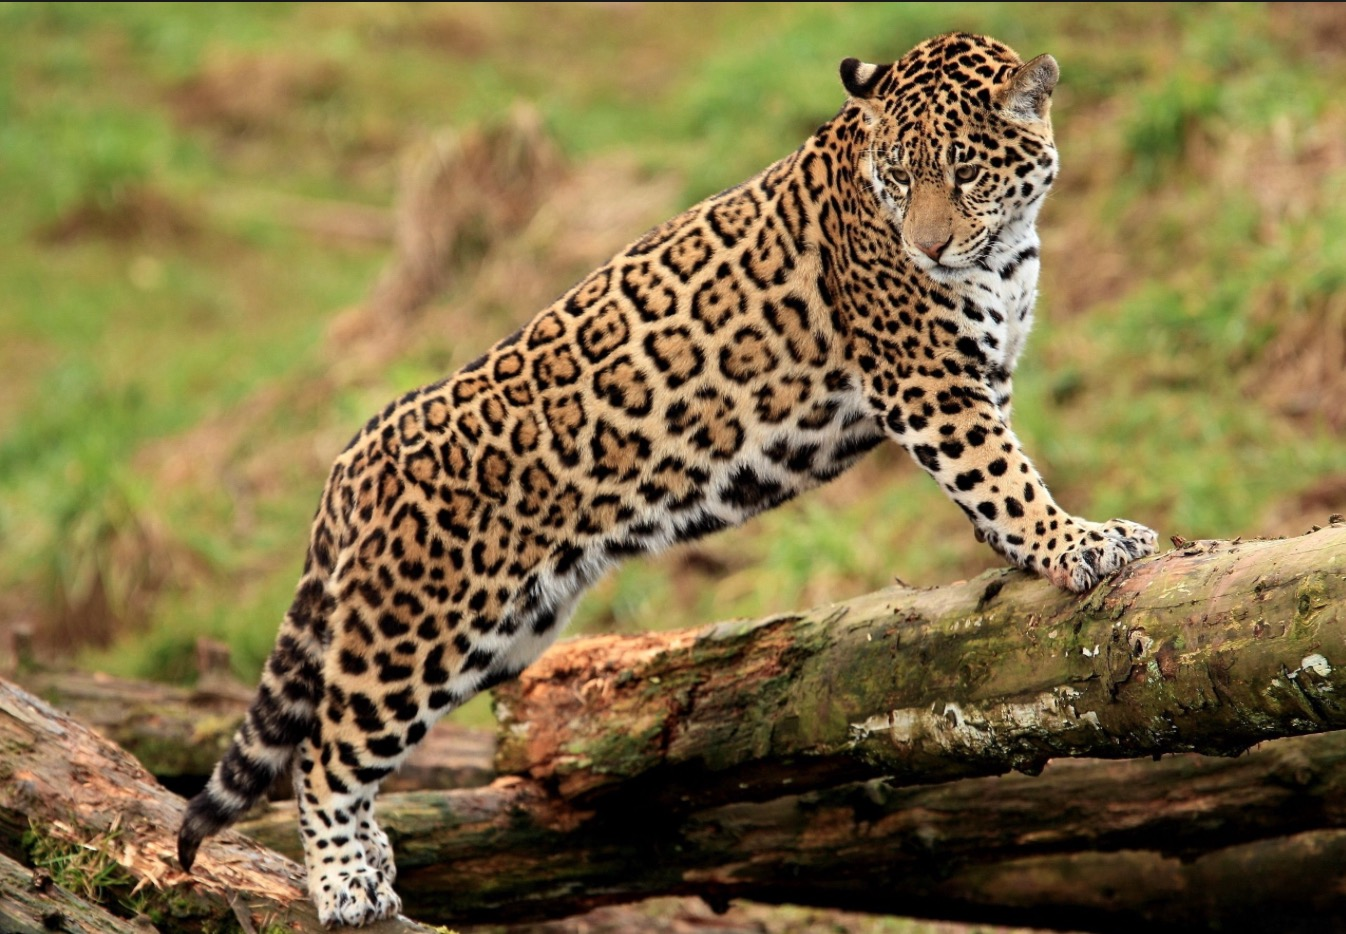 40-Panthera onca.JPEG